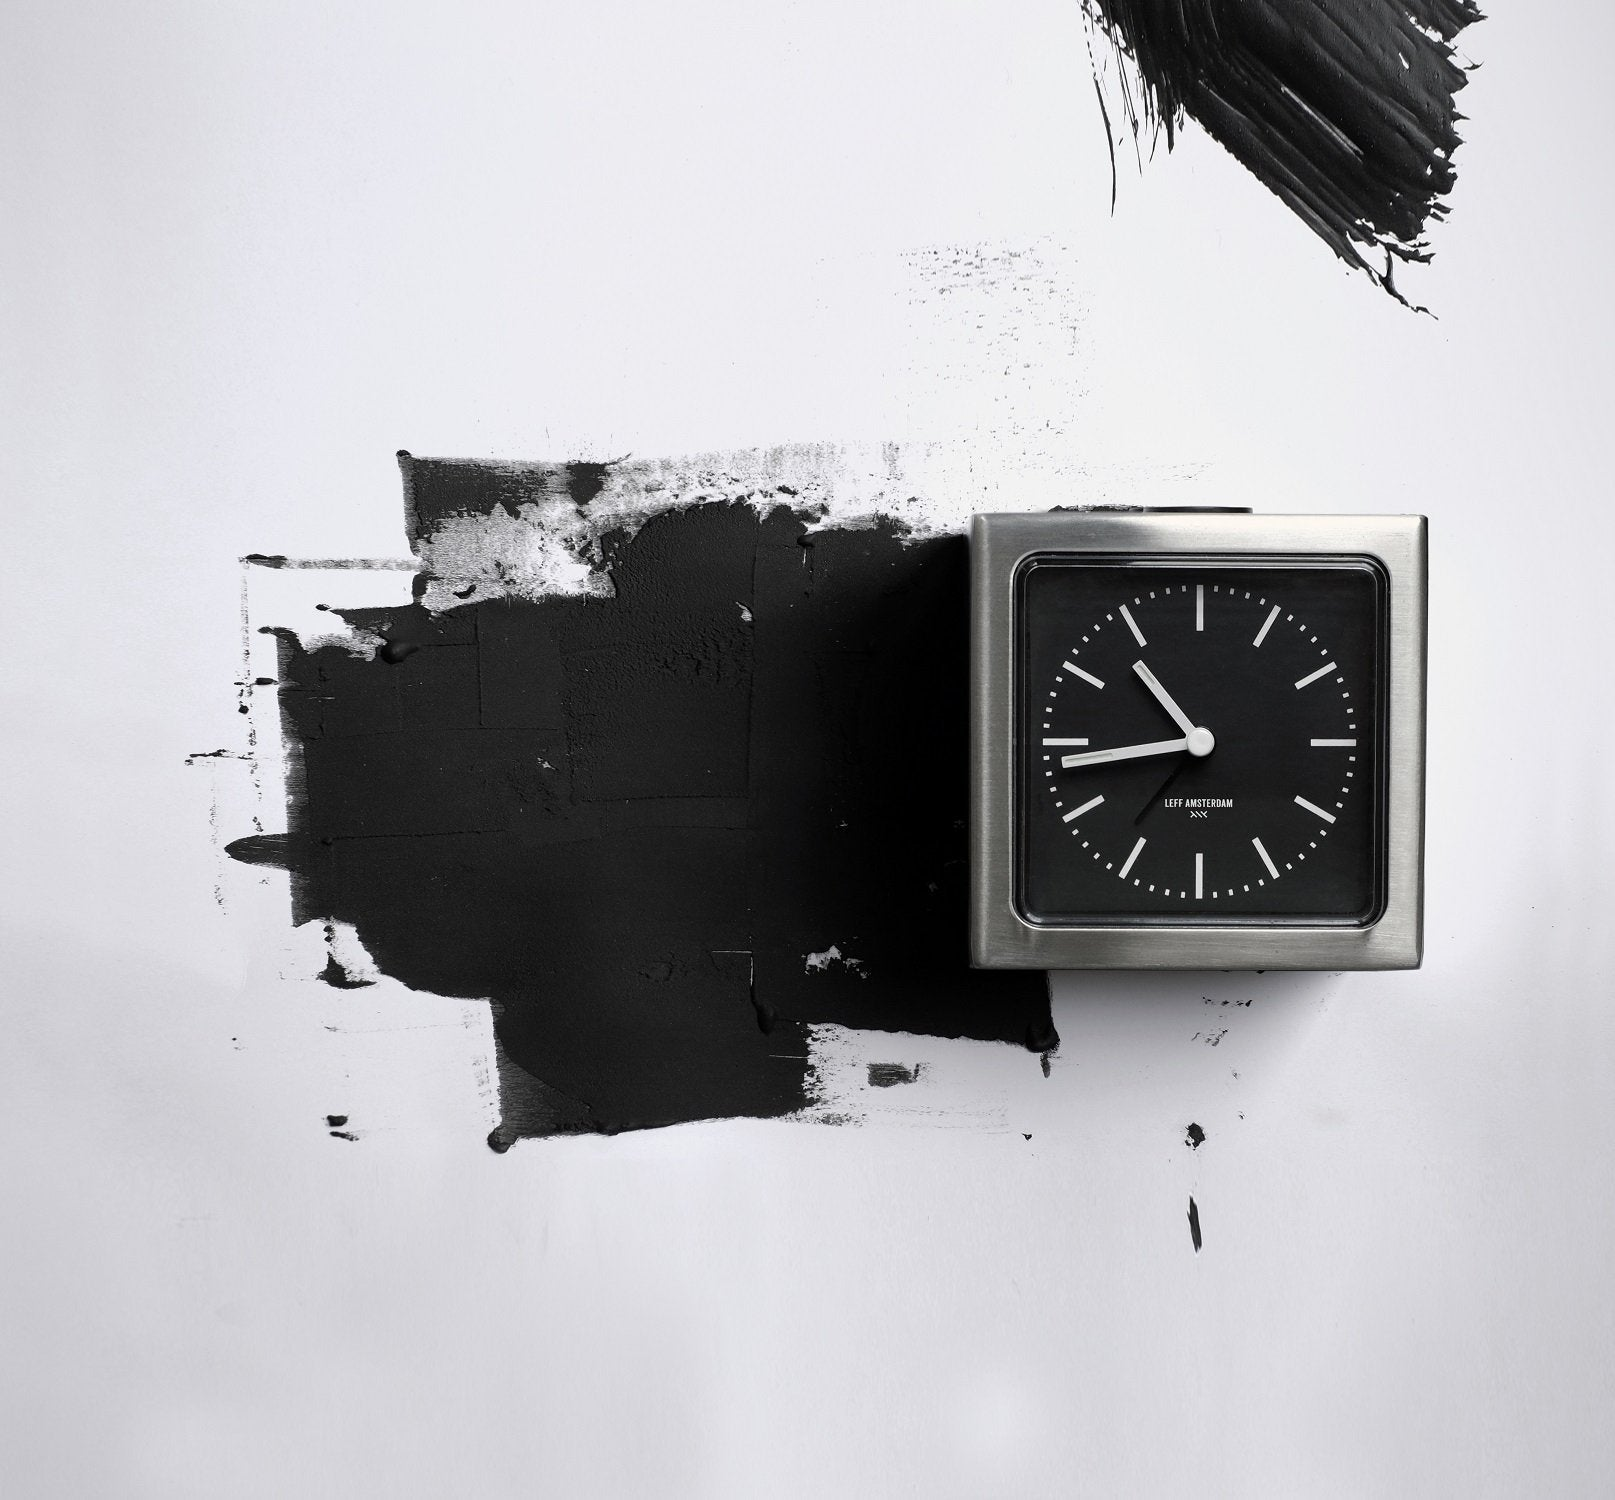 LEFF Amsterdam Brick Index Wall/Desk Clock - Black Face Stainless Steel